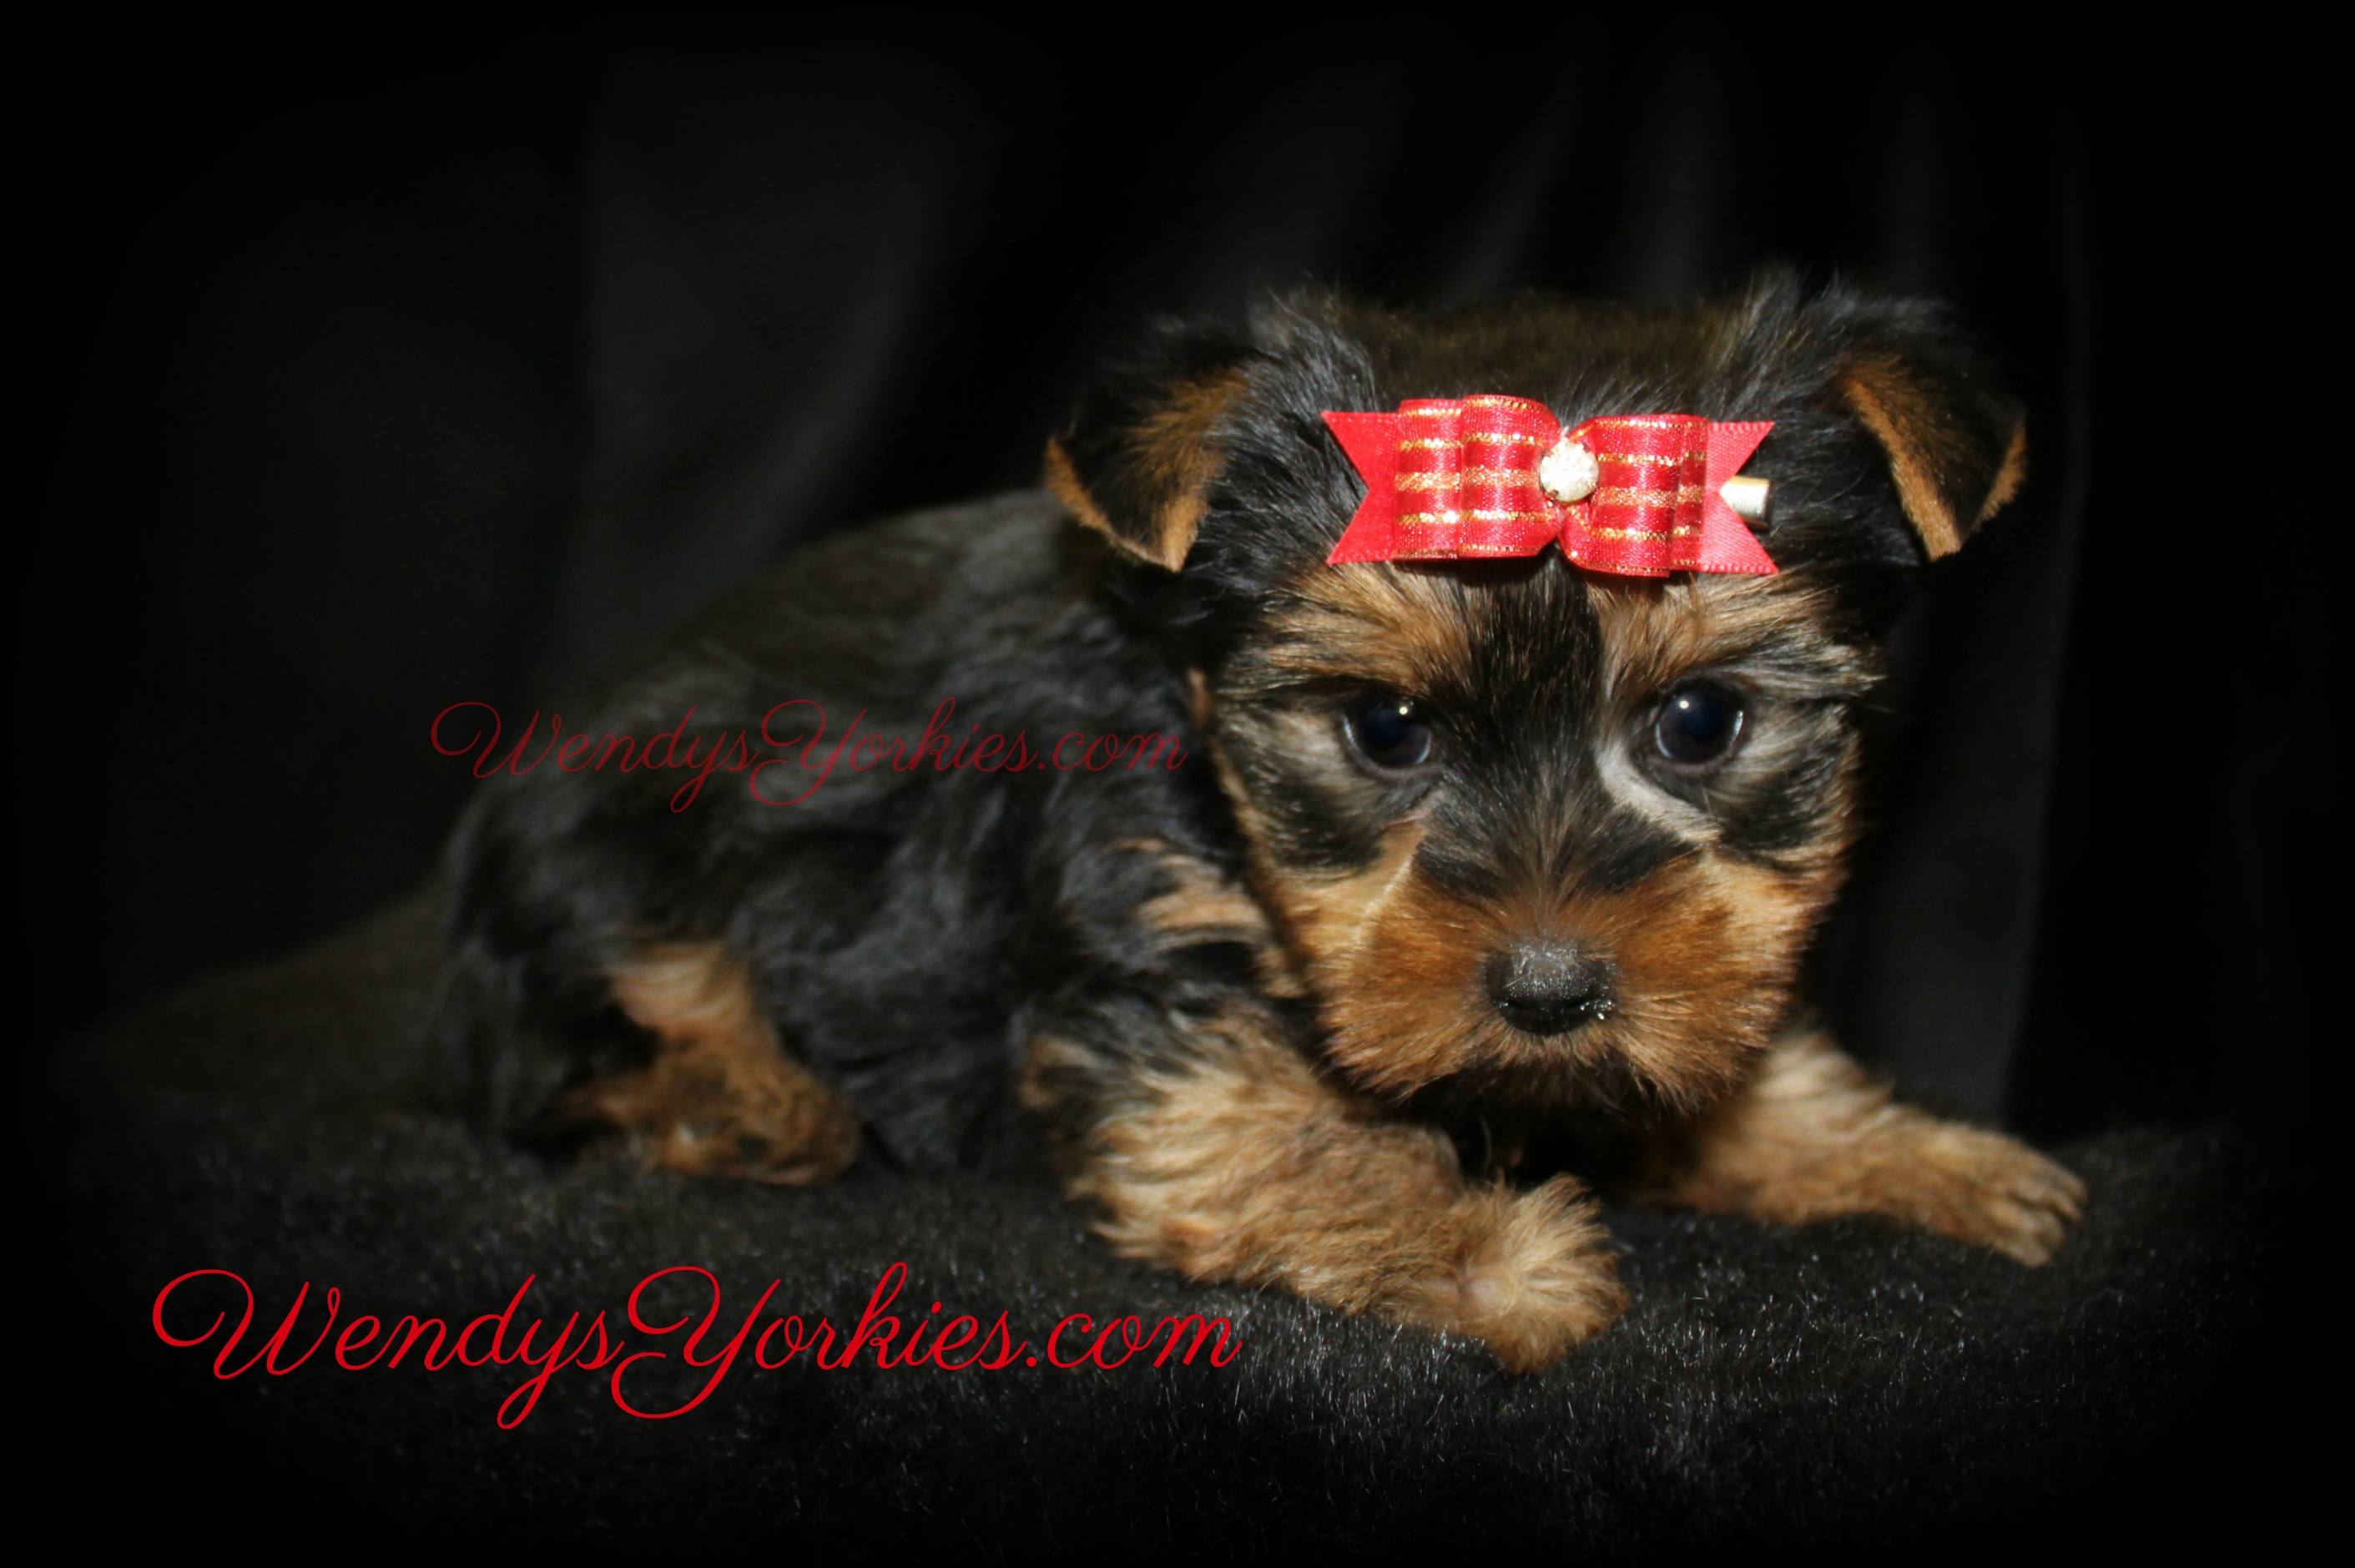 Cute Teacup Yorkie puppies for sale in Texas, WendysYorkies.com, Star m1